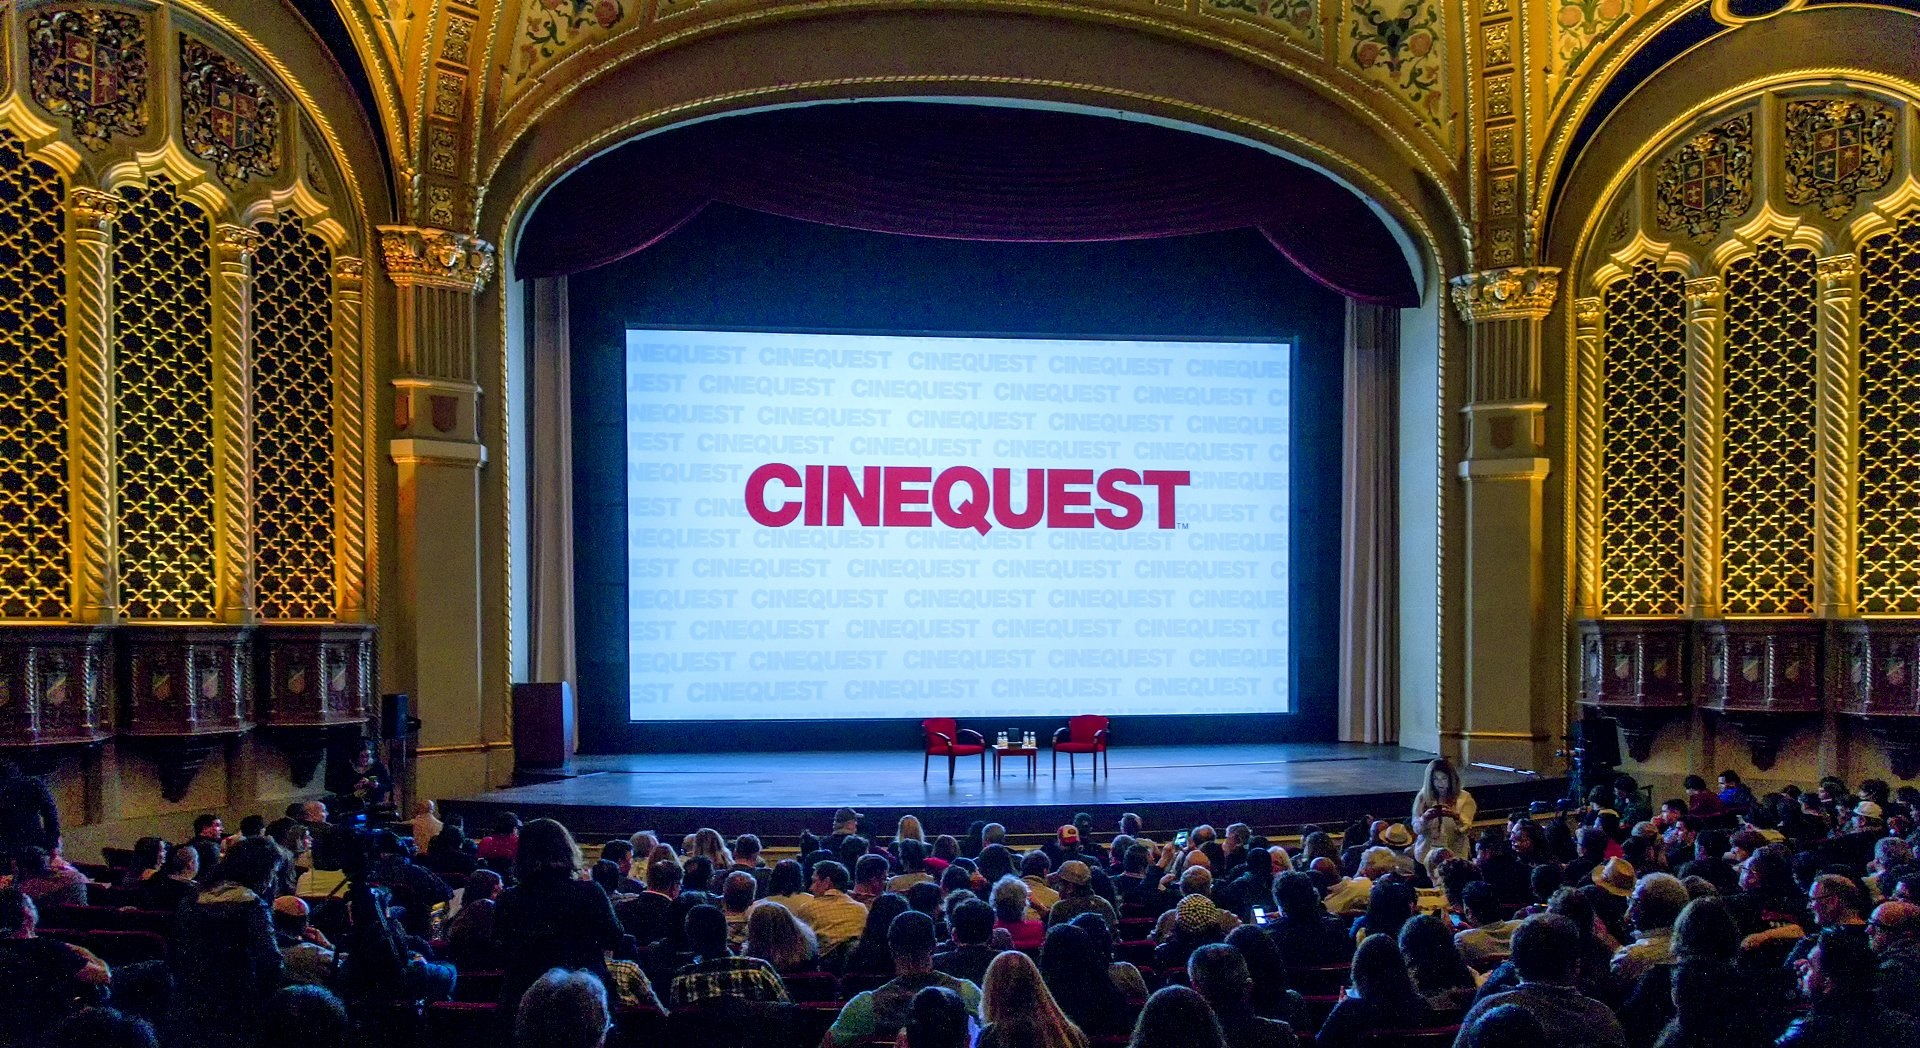 Photograph courtesy of Cinequest This year's Cinequest Film and VR Festival opens Feb. 27 with a screening of 'Krystal' at the California Theatre. The festival runs through March 11.